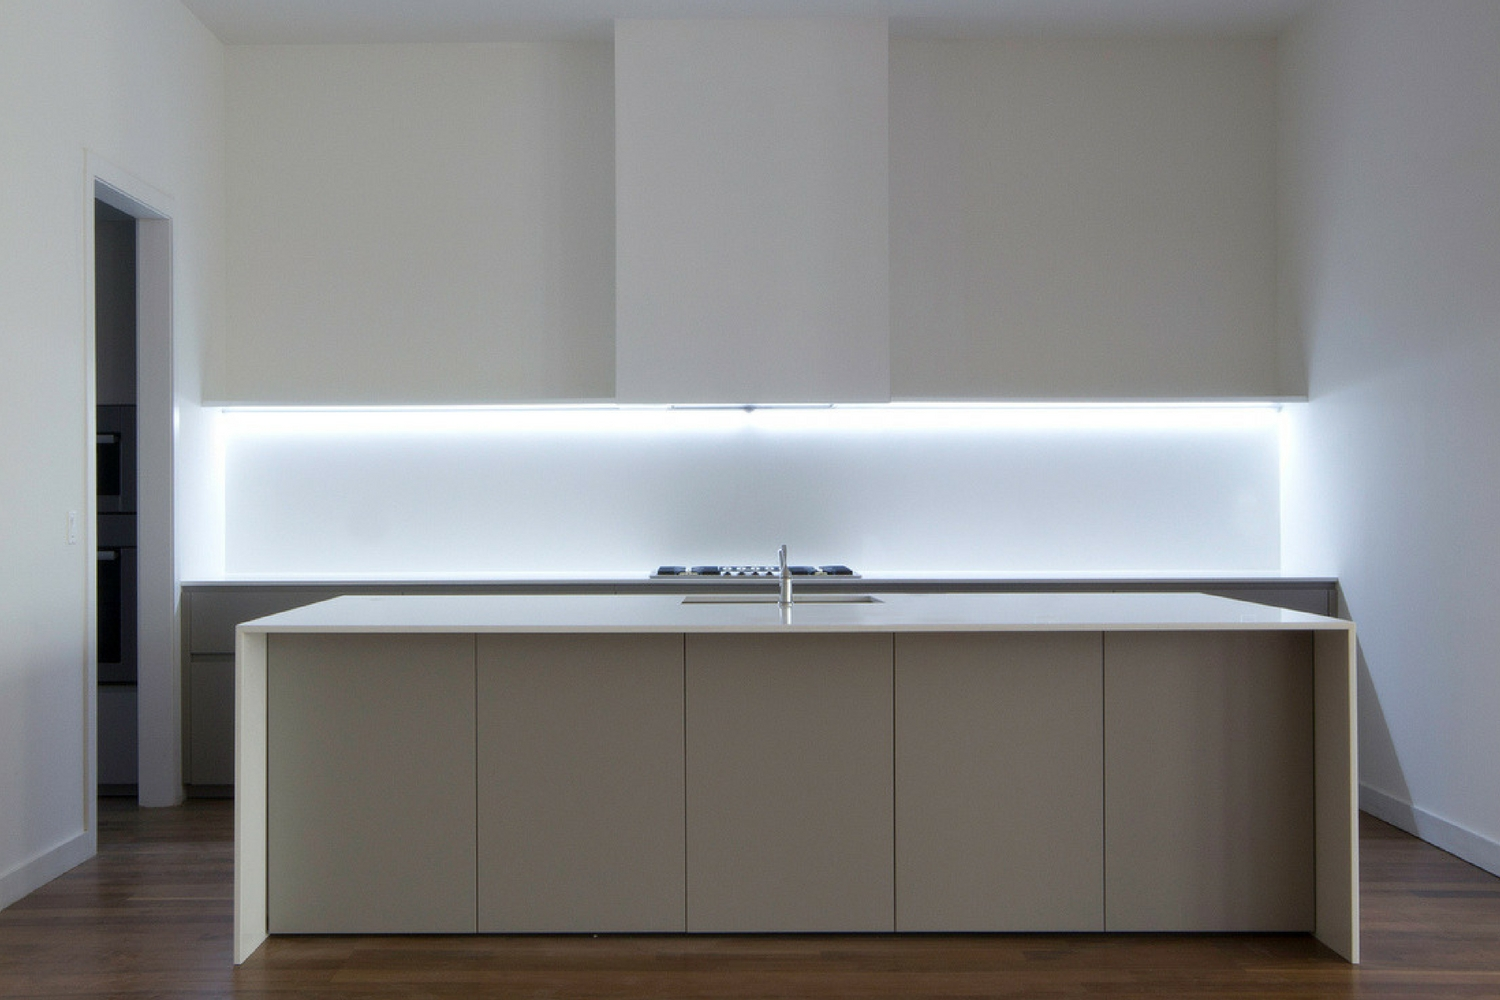 Led Per Pensili Cucina.I Miei 5 Segreti Per Illuminare La Cucina Idealight It